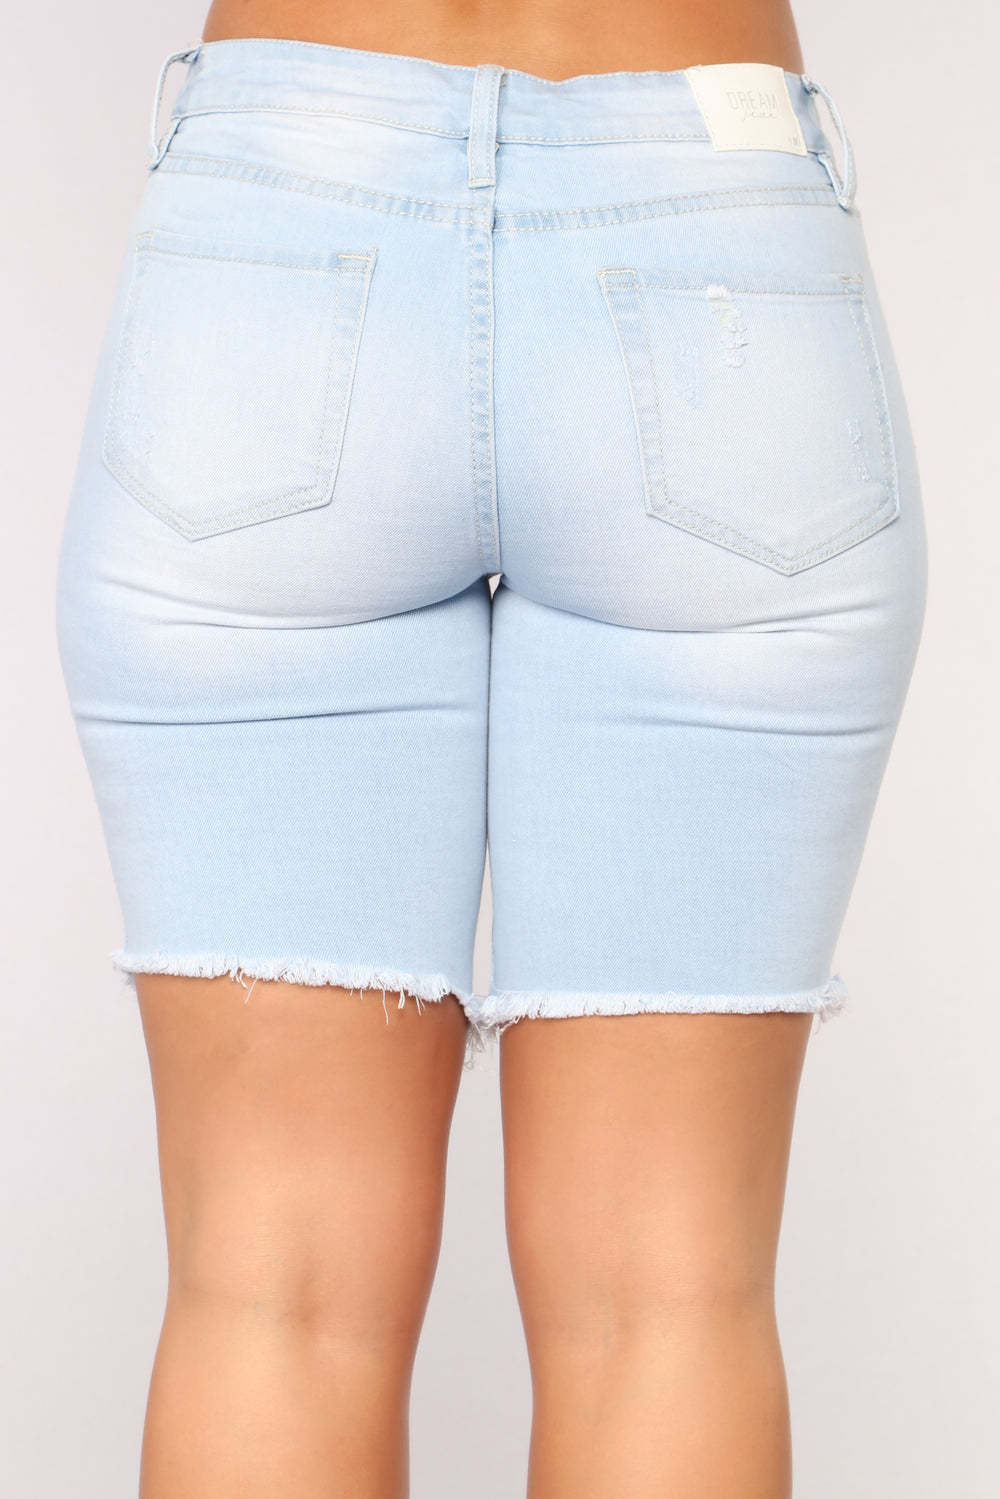 Over Here Waitin' Denim Bermuda - Light Blue Wash